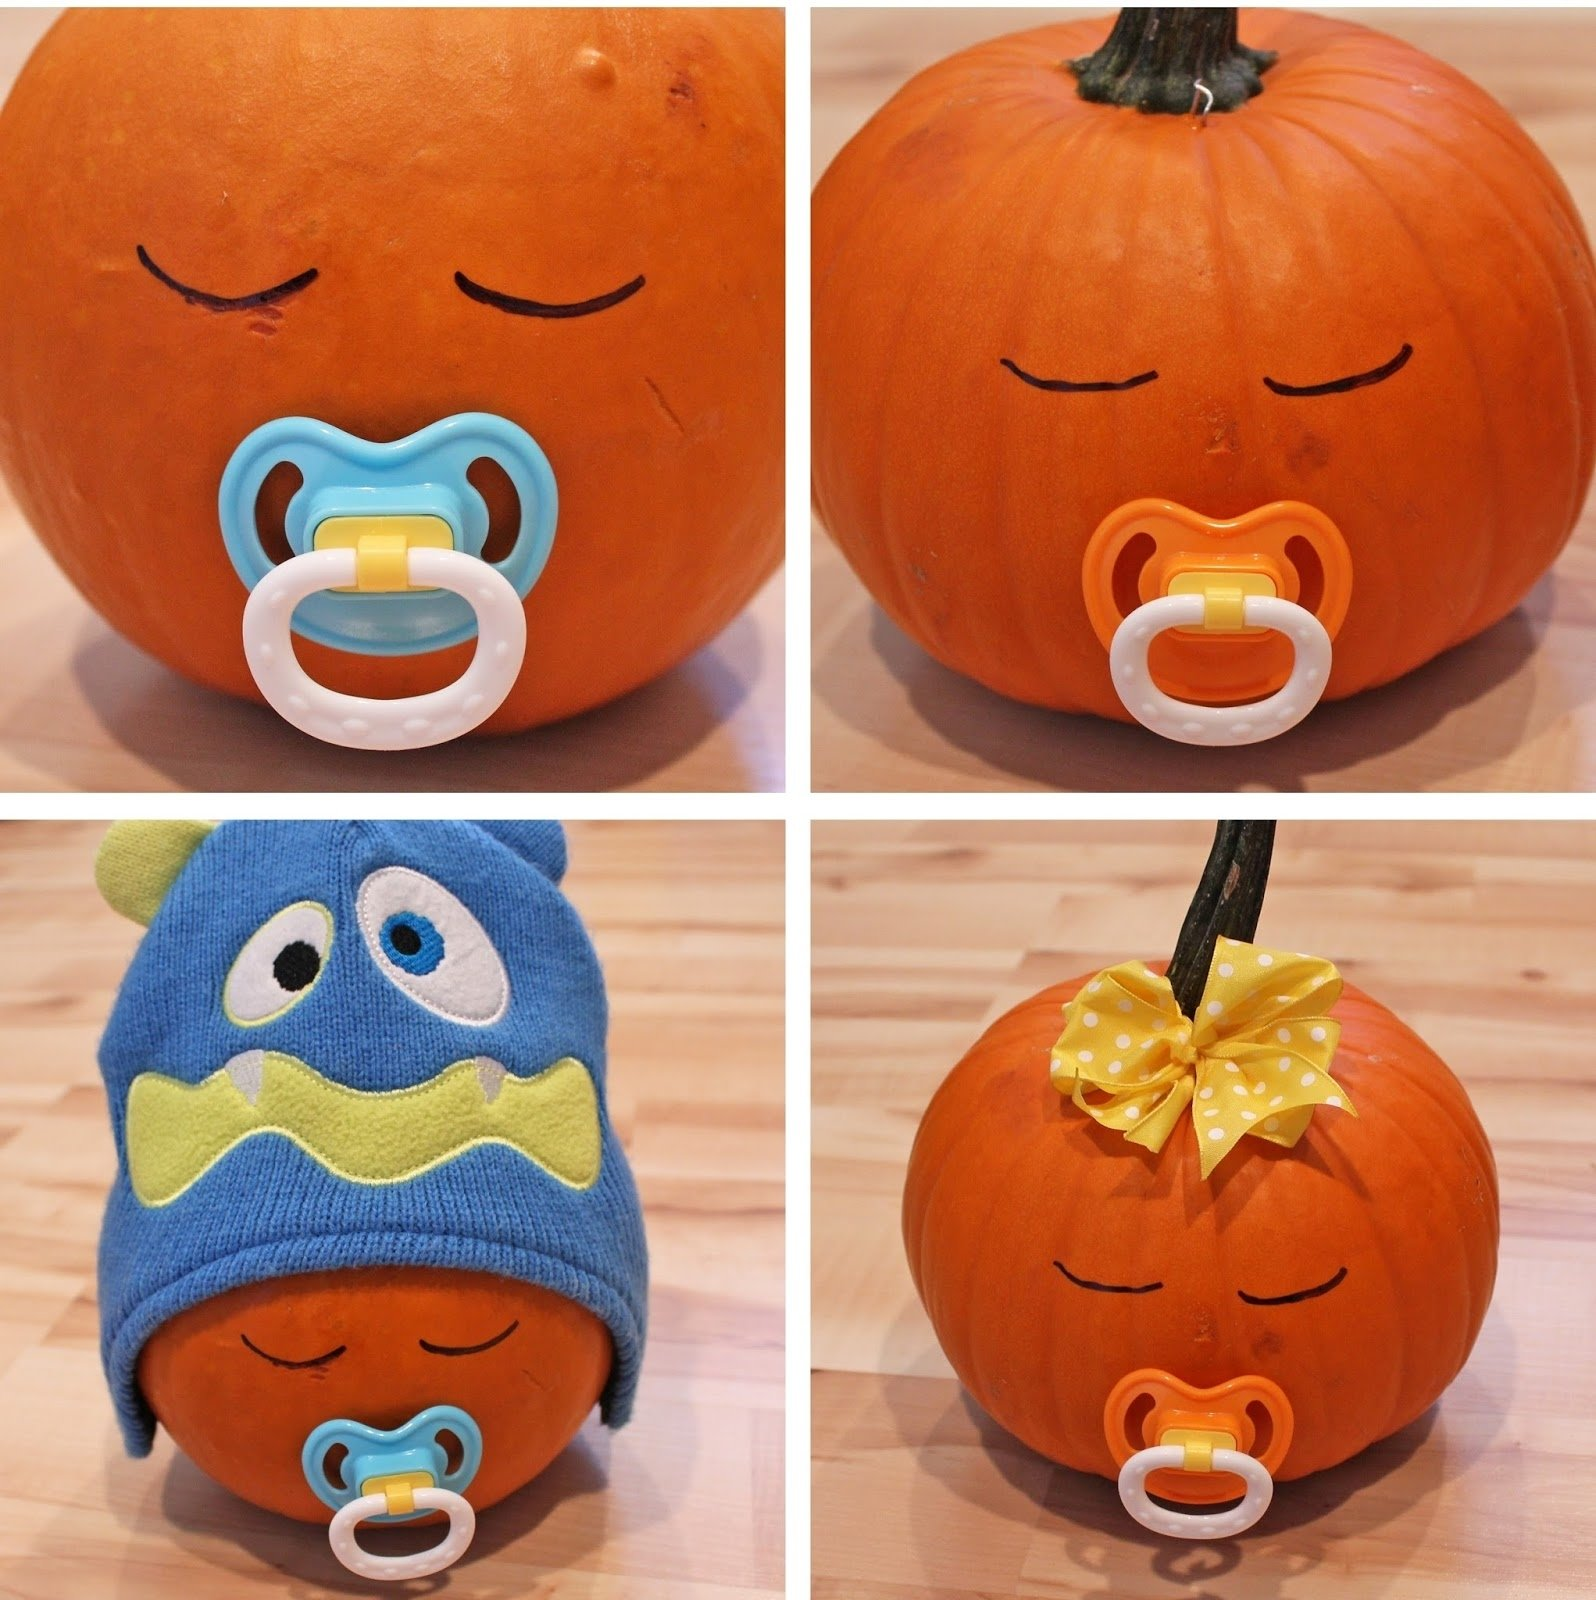 10 Elegant Pumpkin Painting Ideas For Kids funny pumpkin painted design ideas crafts and arts ideas 2020